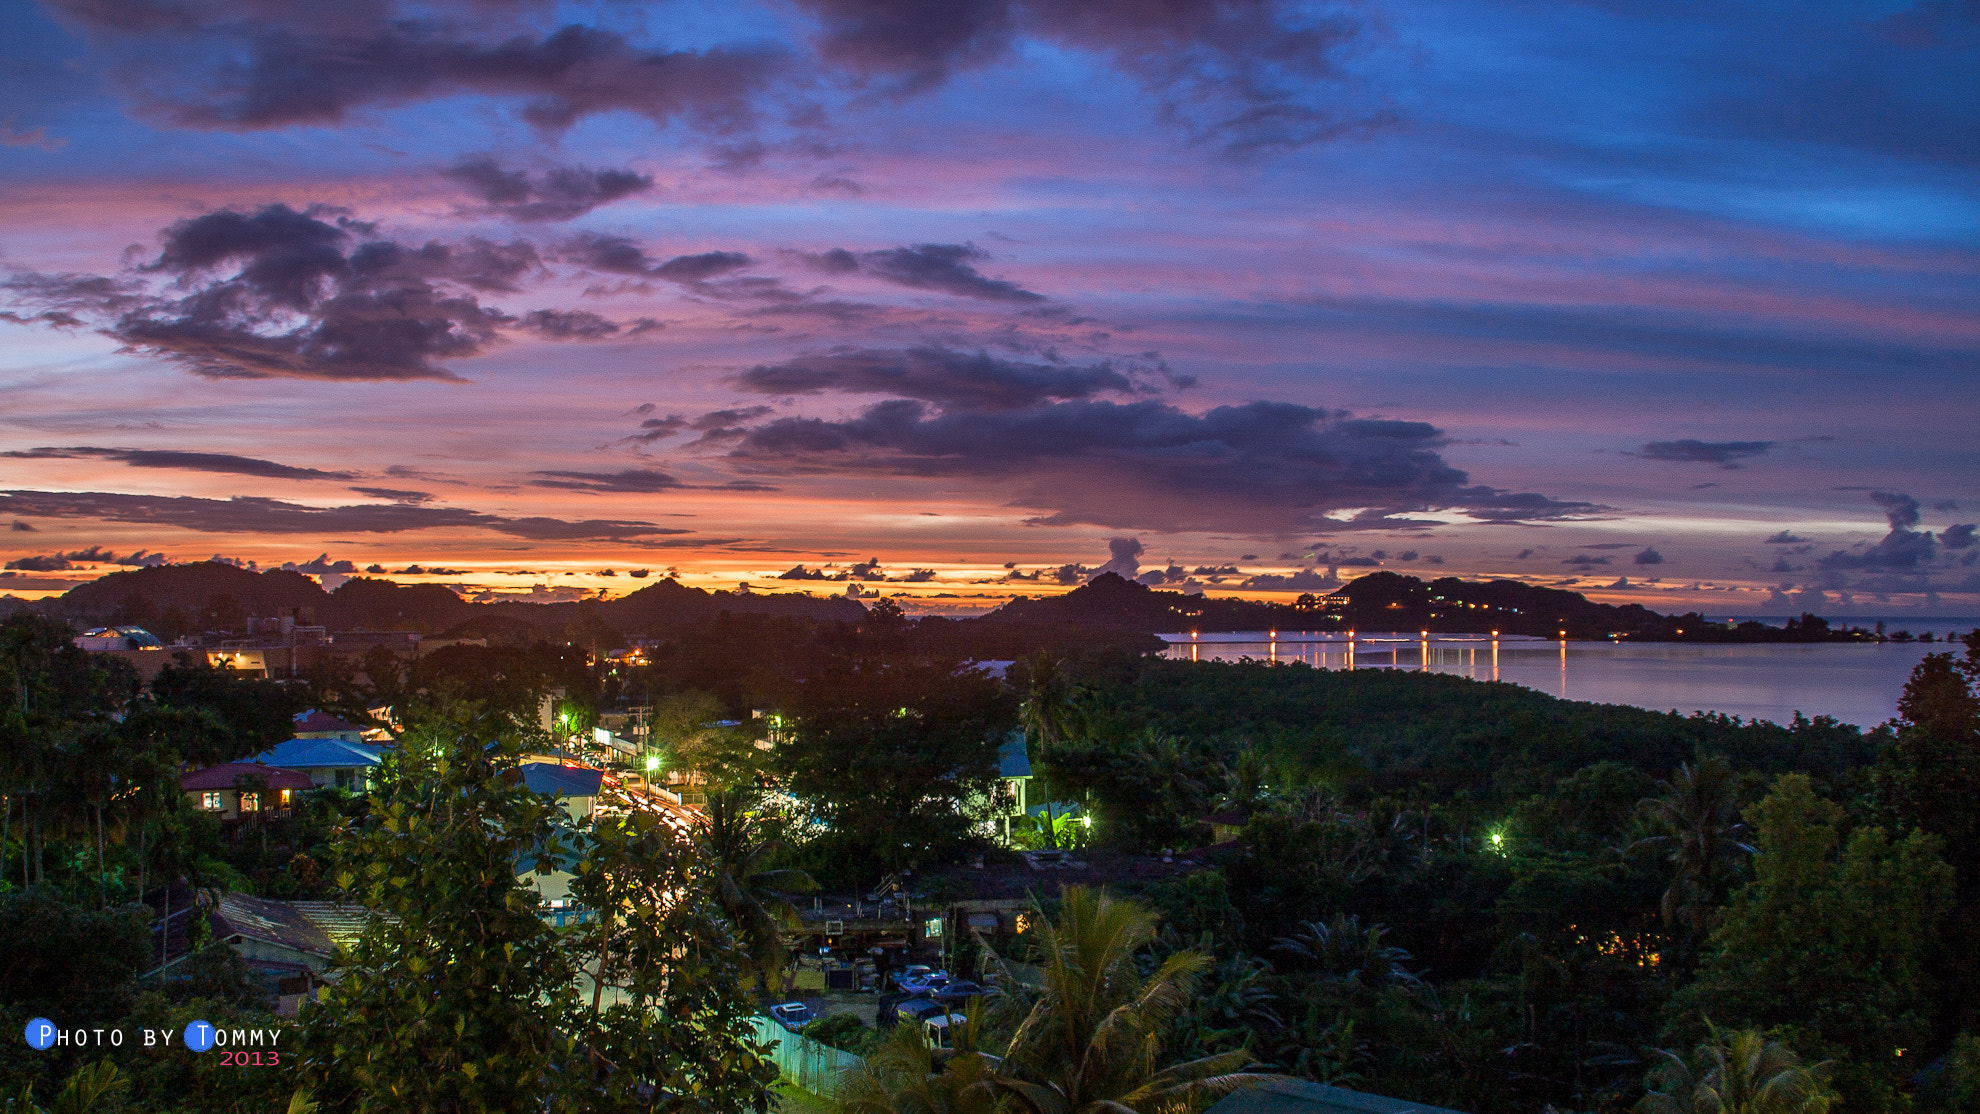 Photograph Sunset in Palau by Tommy Hsieh on 500px